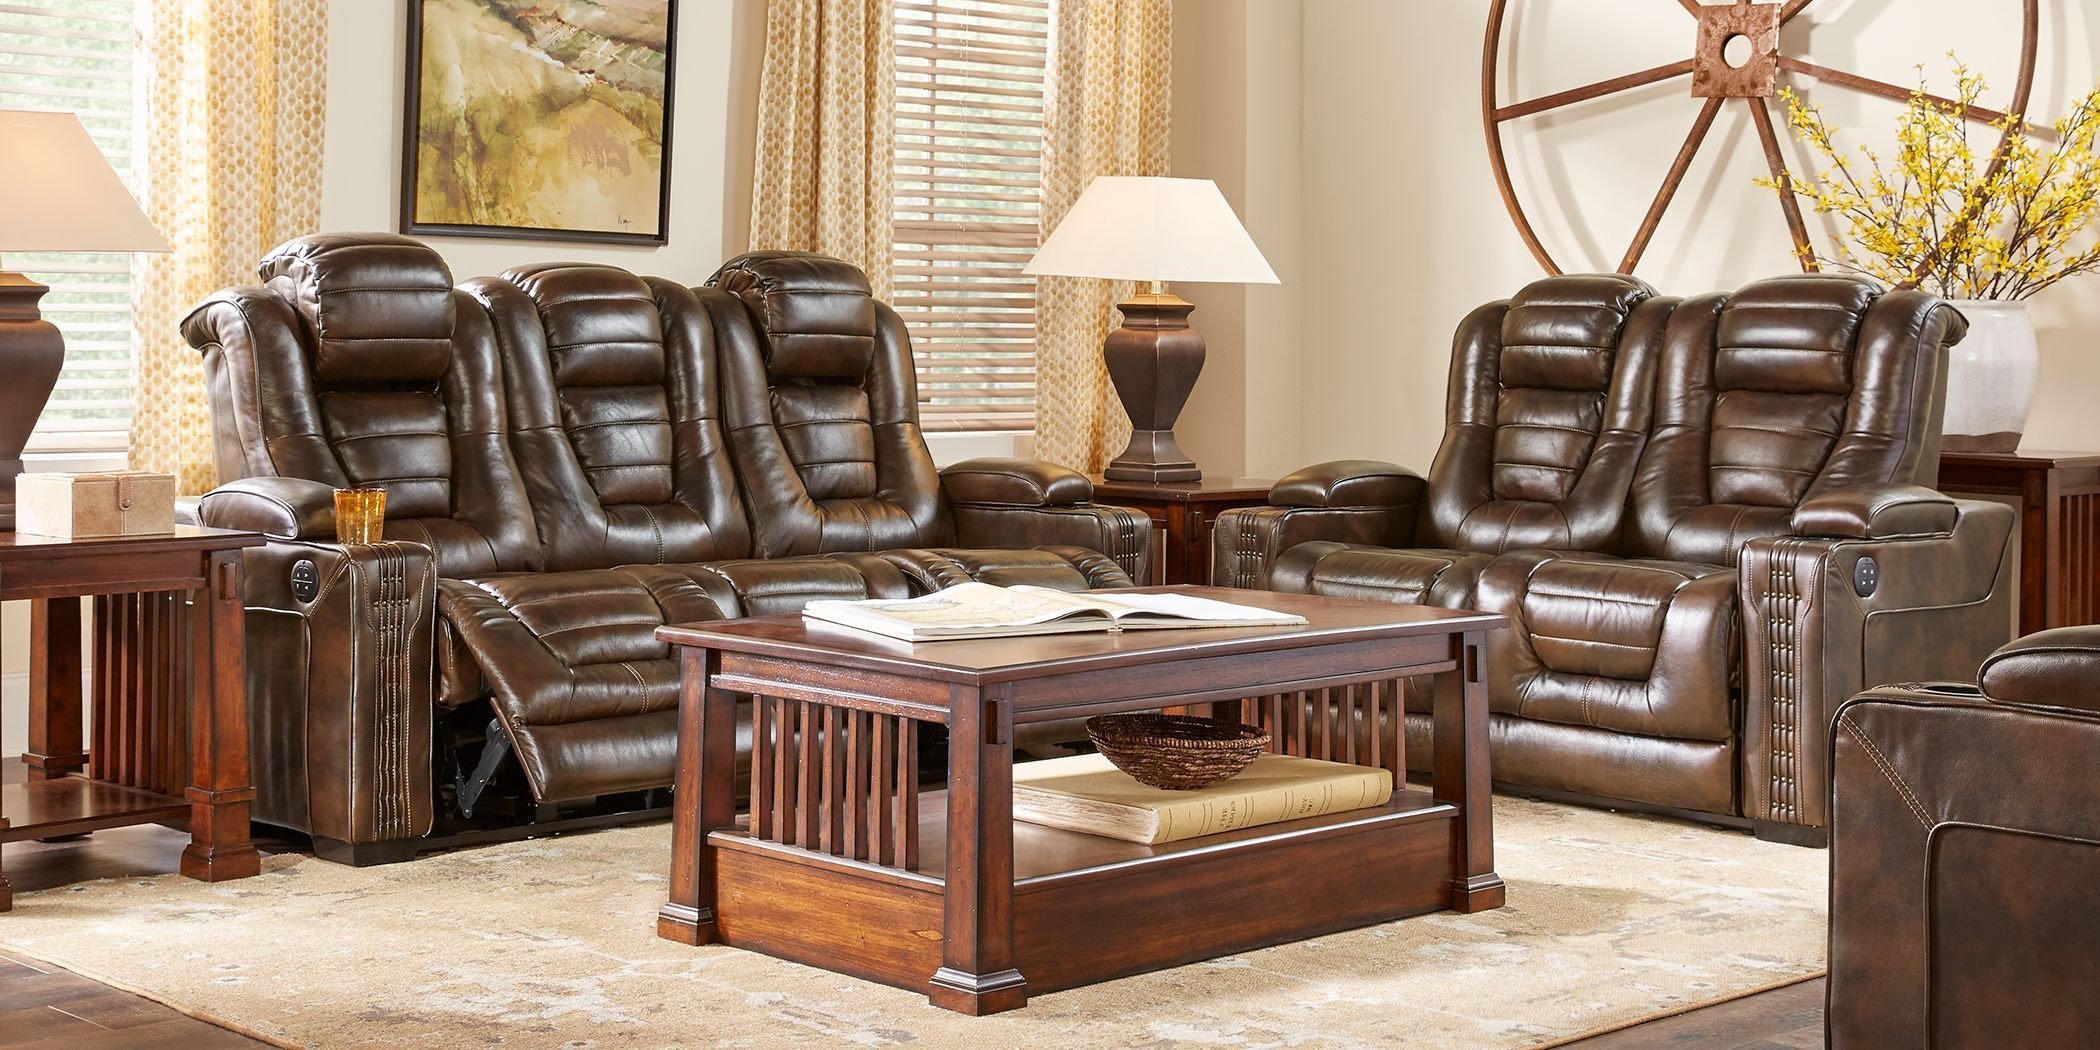 Eric Church Highway To Home Renegade Brown Leather 2 Pc Living Room With Dual Power Reclining Sofa Living Room Sets Furniture Swivel Chair Living Room Leather Living Room Set